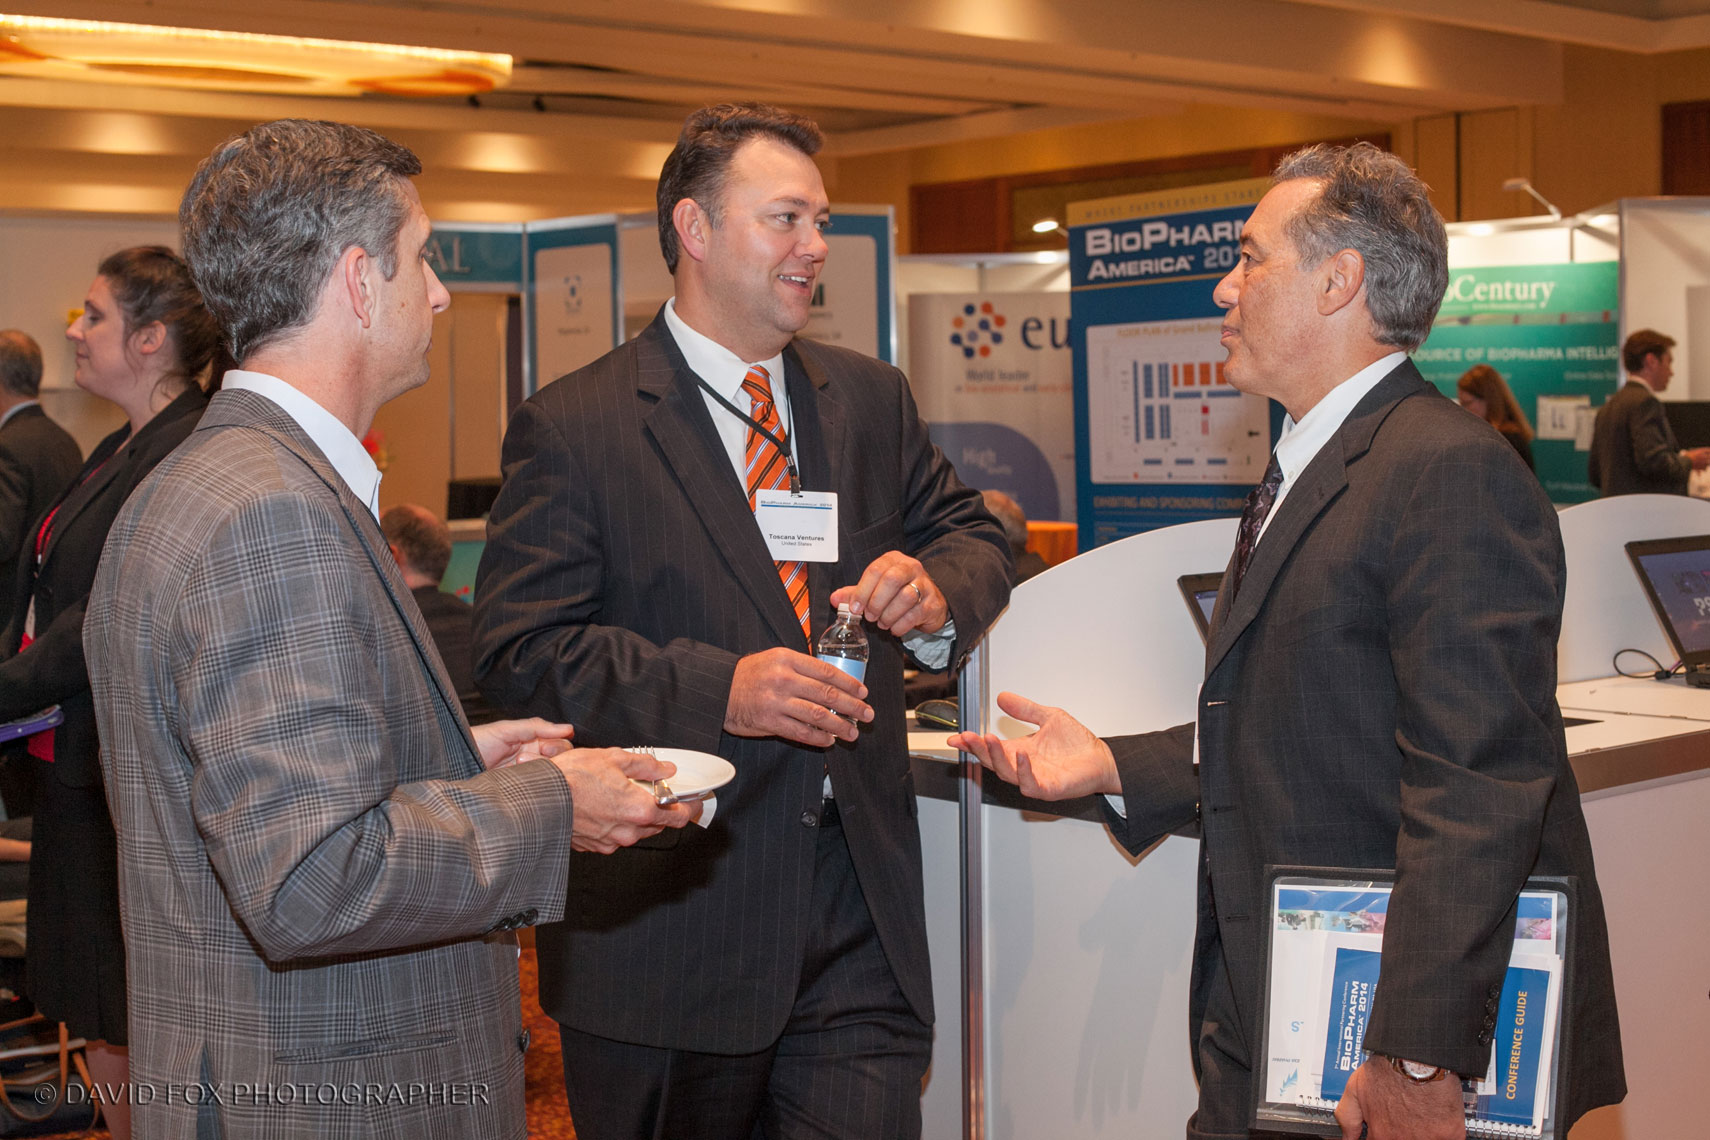 Trade Show Attendees Networking at Exhibit Hall Reception